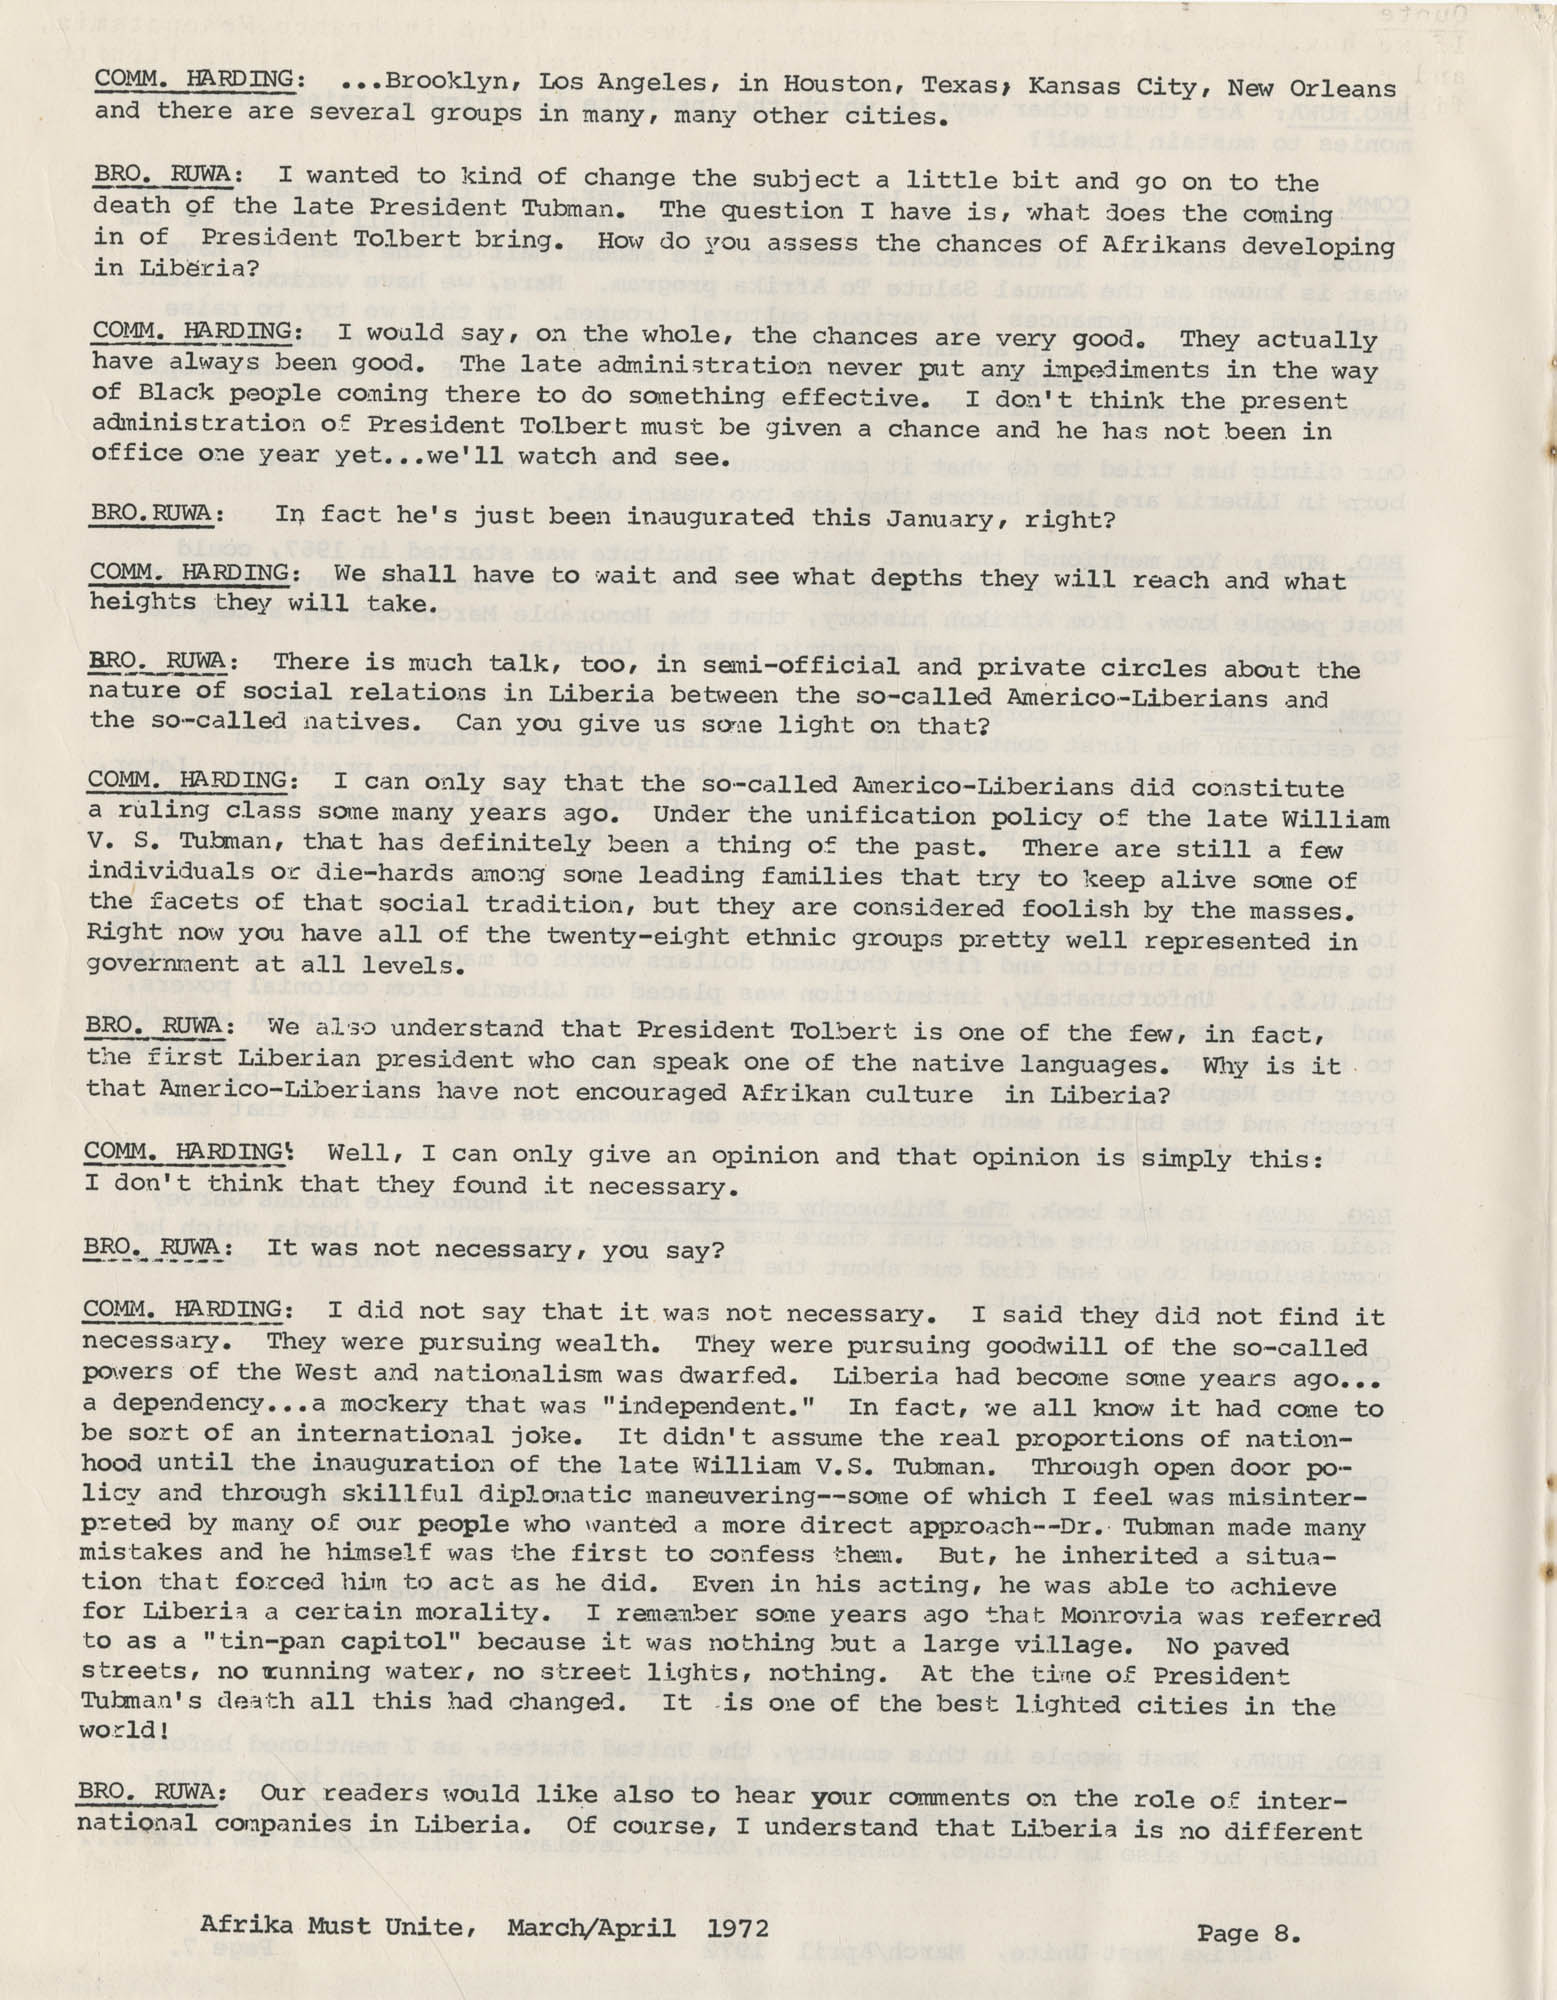 Afrika Must Unite, Vol. 1, No. 4, Page 8